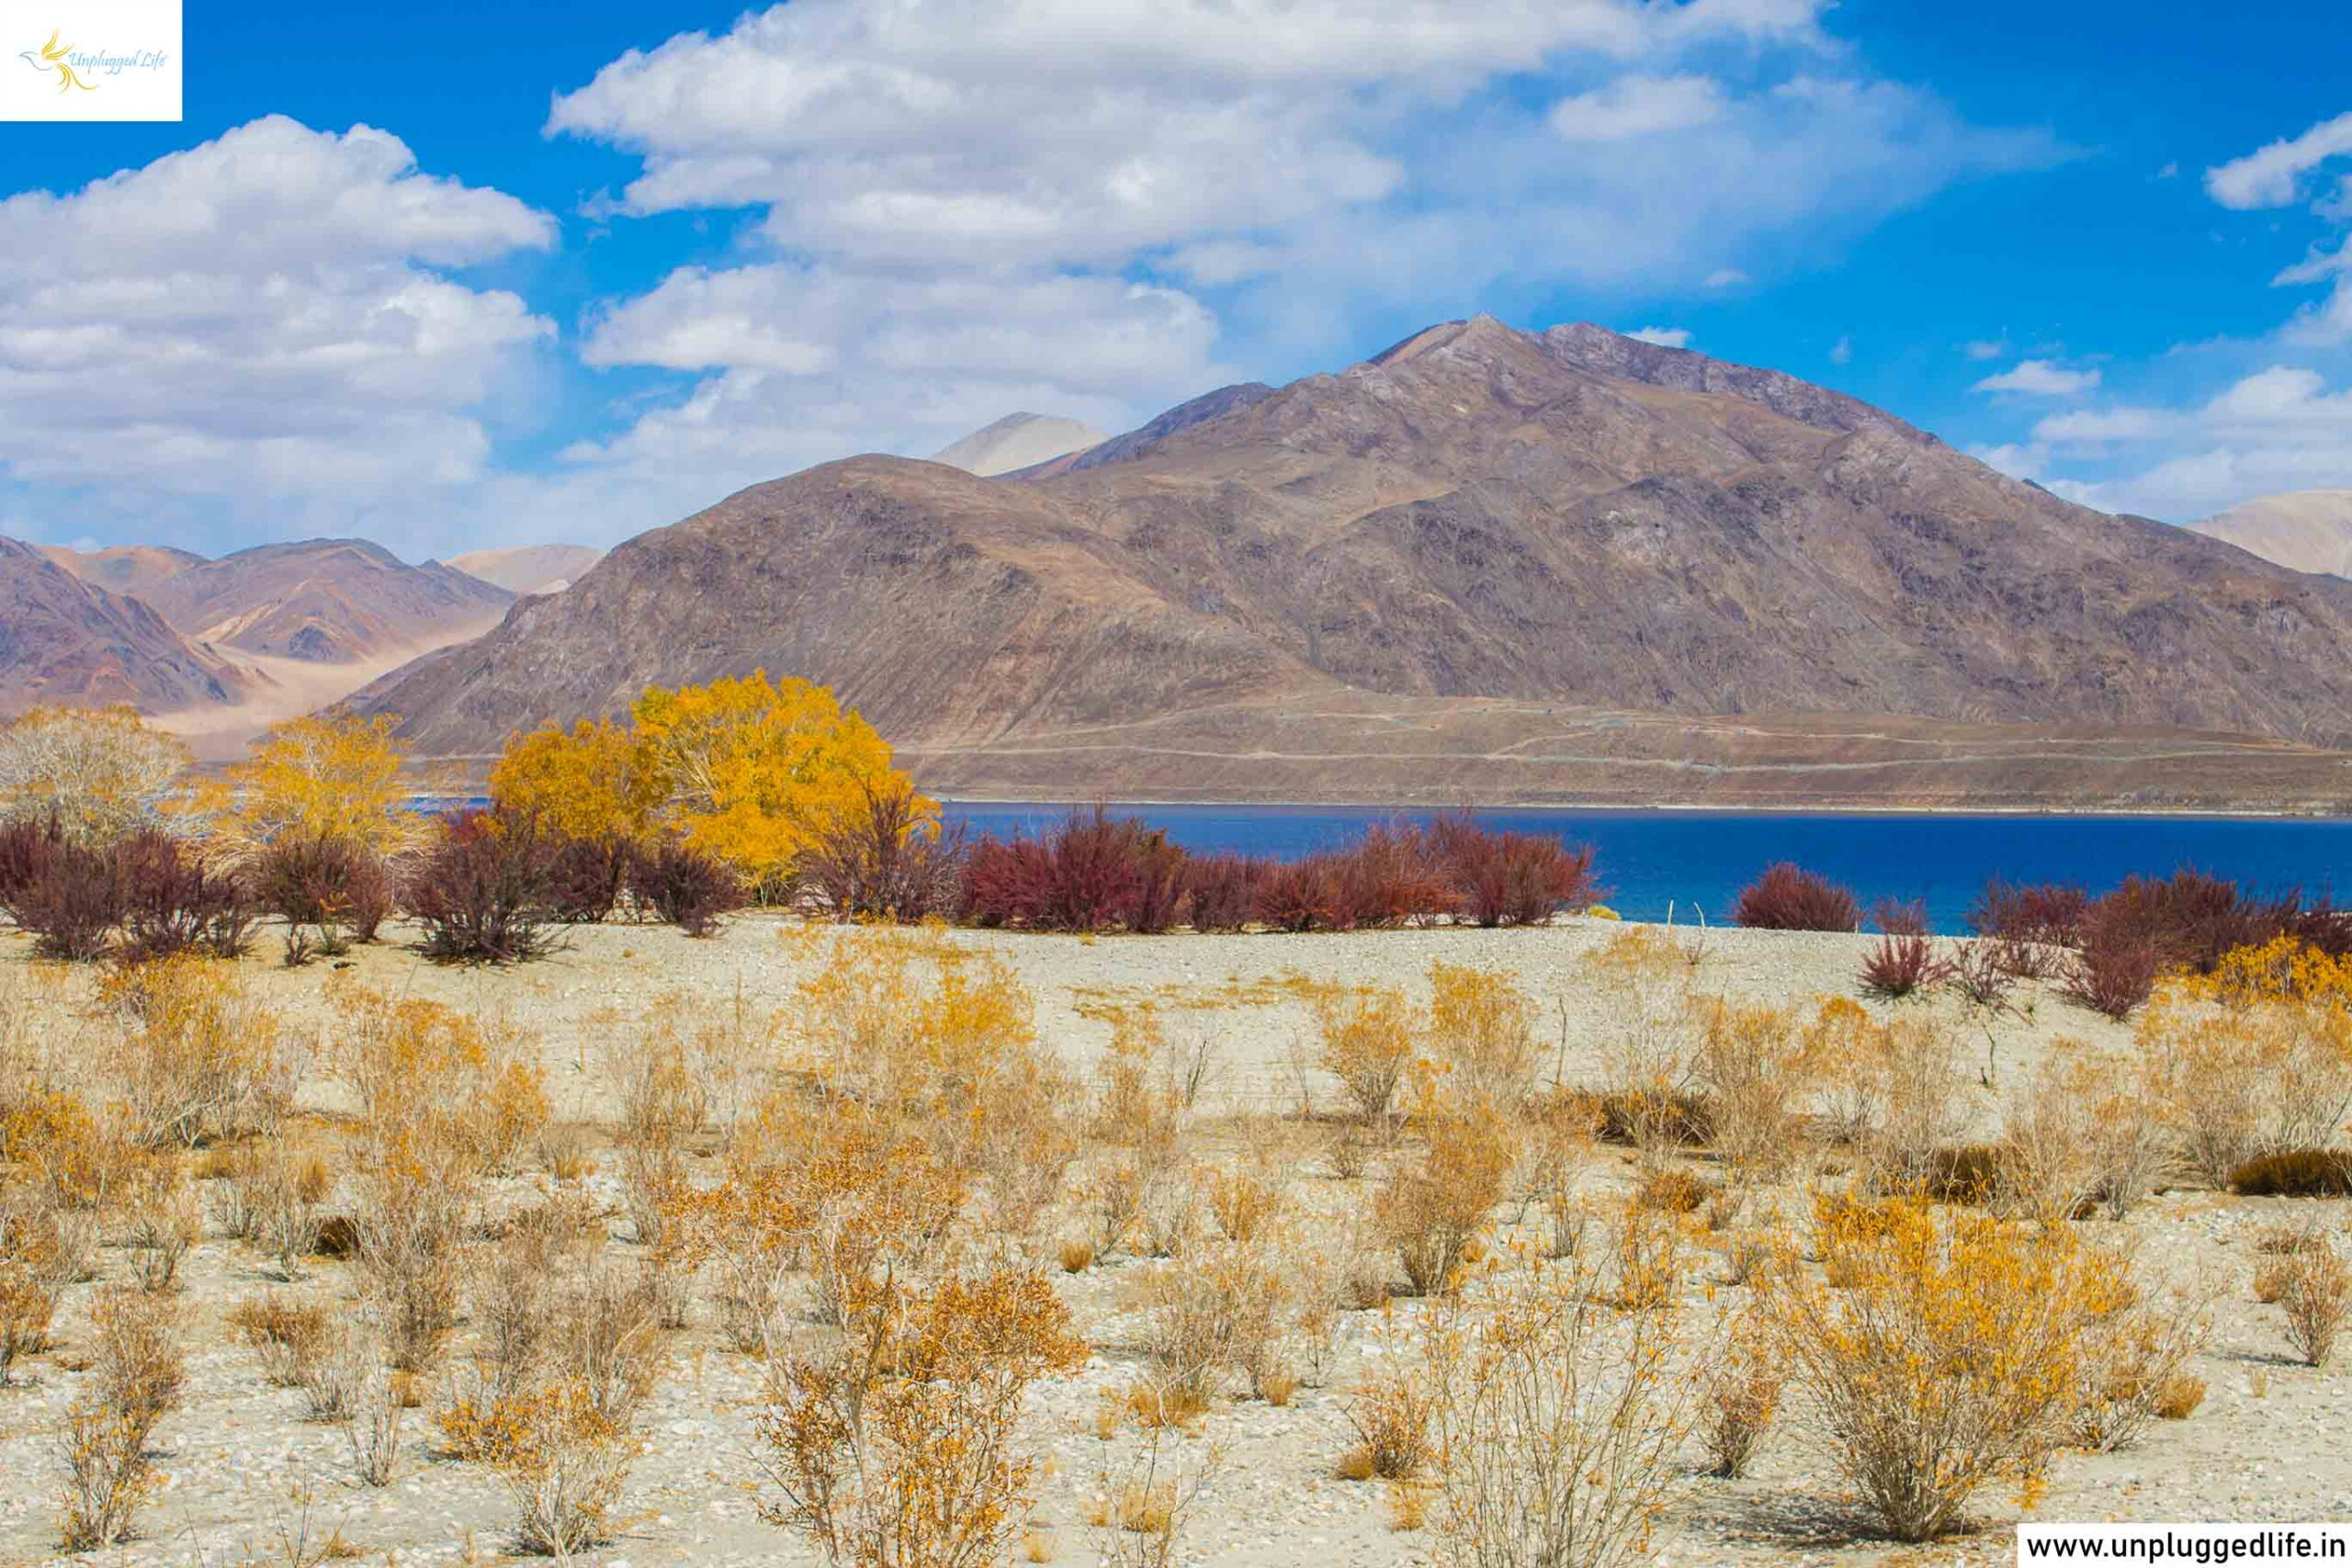 Pangong Lake in Autumn, Tso Pangong in Fall, Pangong Lake in Fall, Tso Pangong Lake in Autumn, Ladakh, Unplugged Life, Highest Lakes in India, Highest Lakes in India, high altitude lake, lake, salt water lakes, lakes in Ladakh, Landscape in Ladakh, Landscape, Mountains